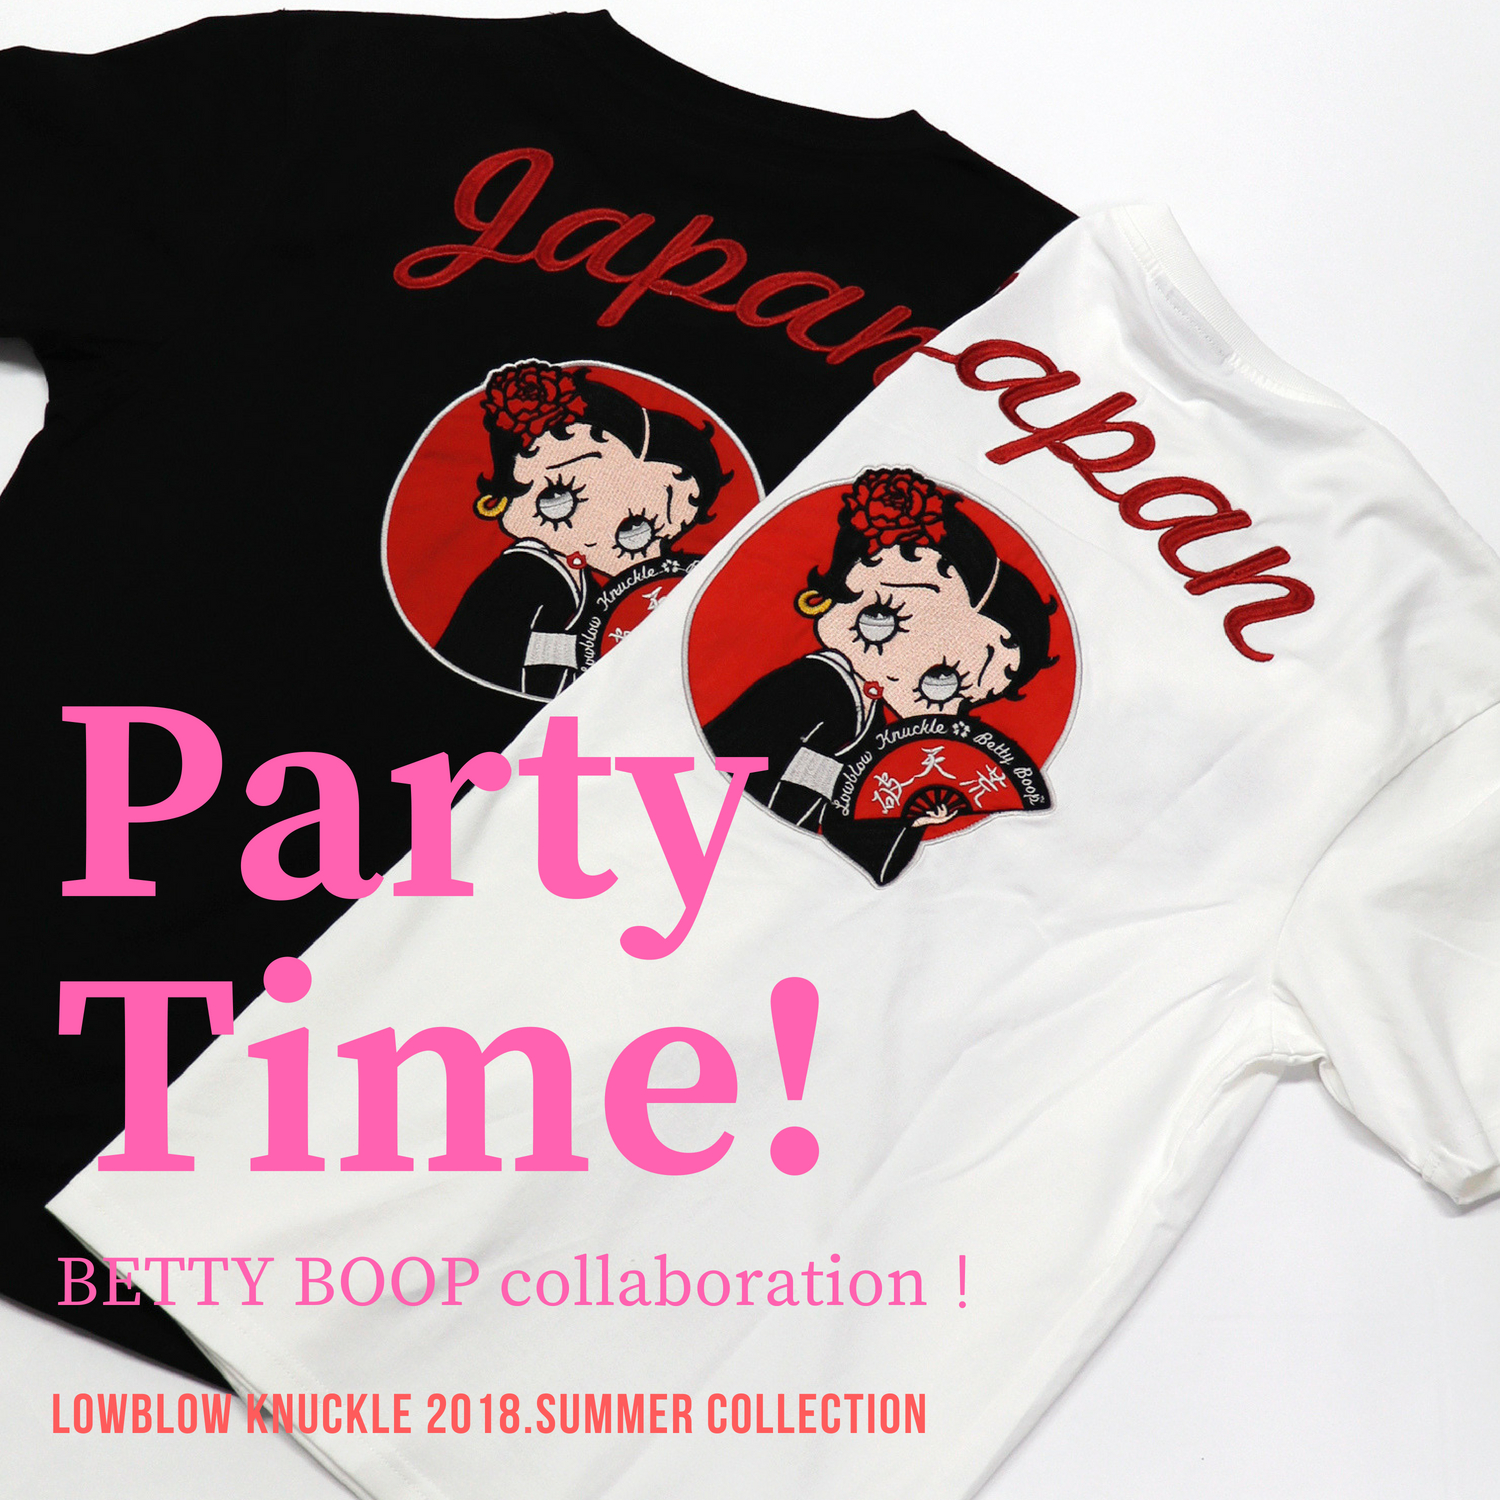 BETTY BOOP SUMMER COLLECTION !!!